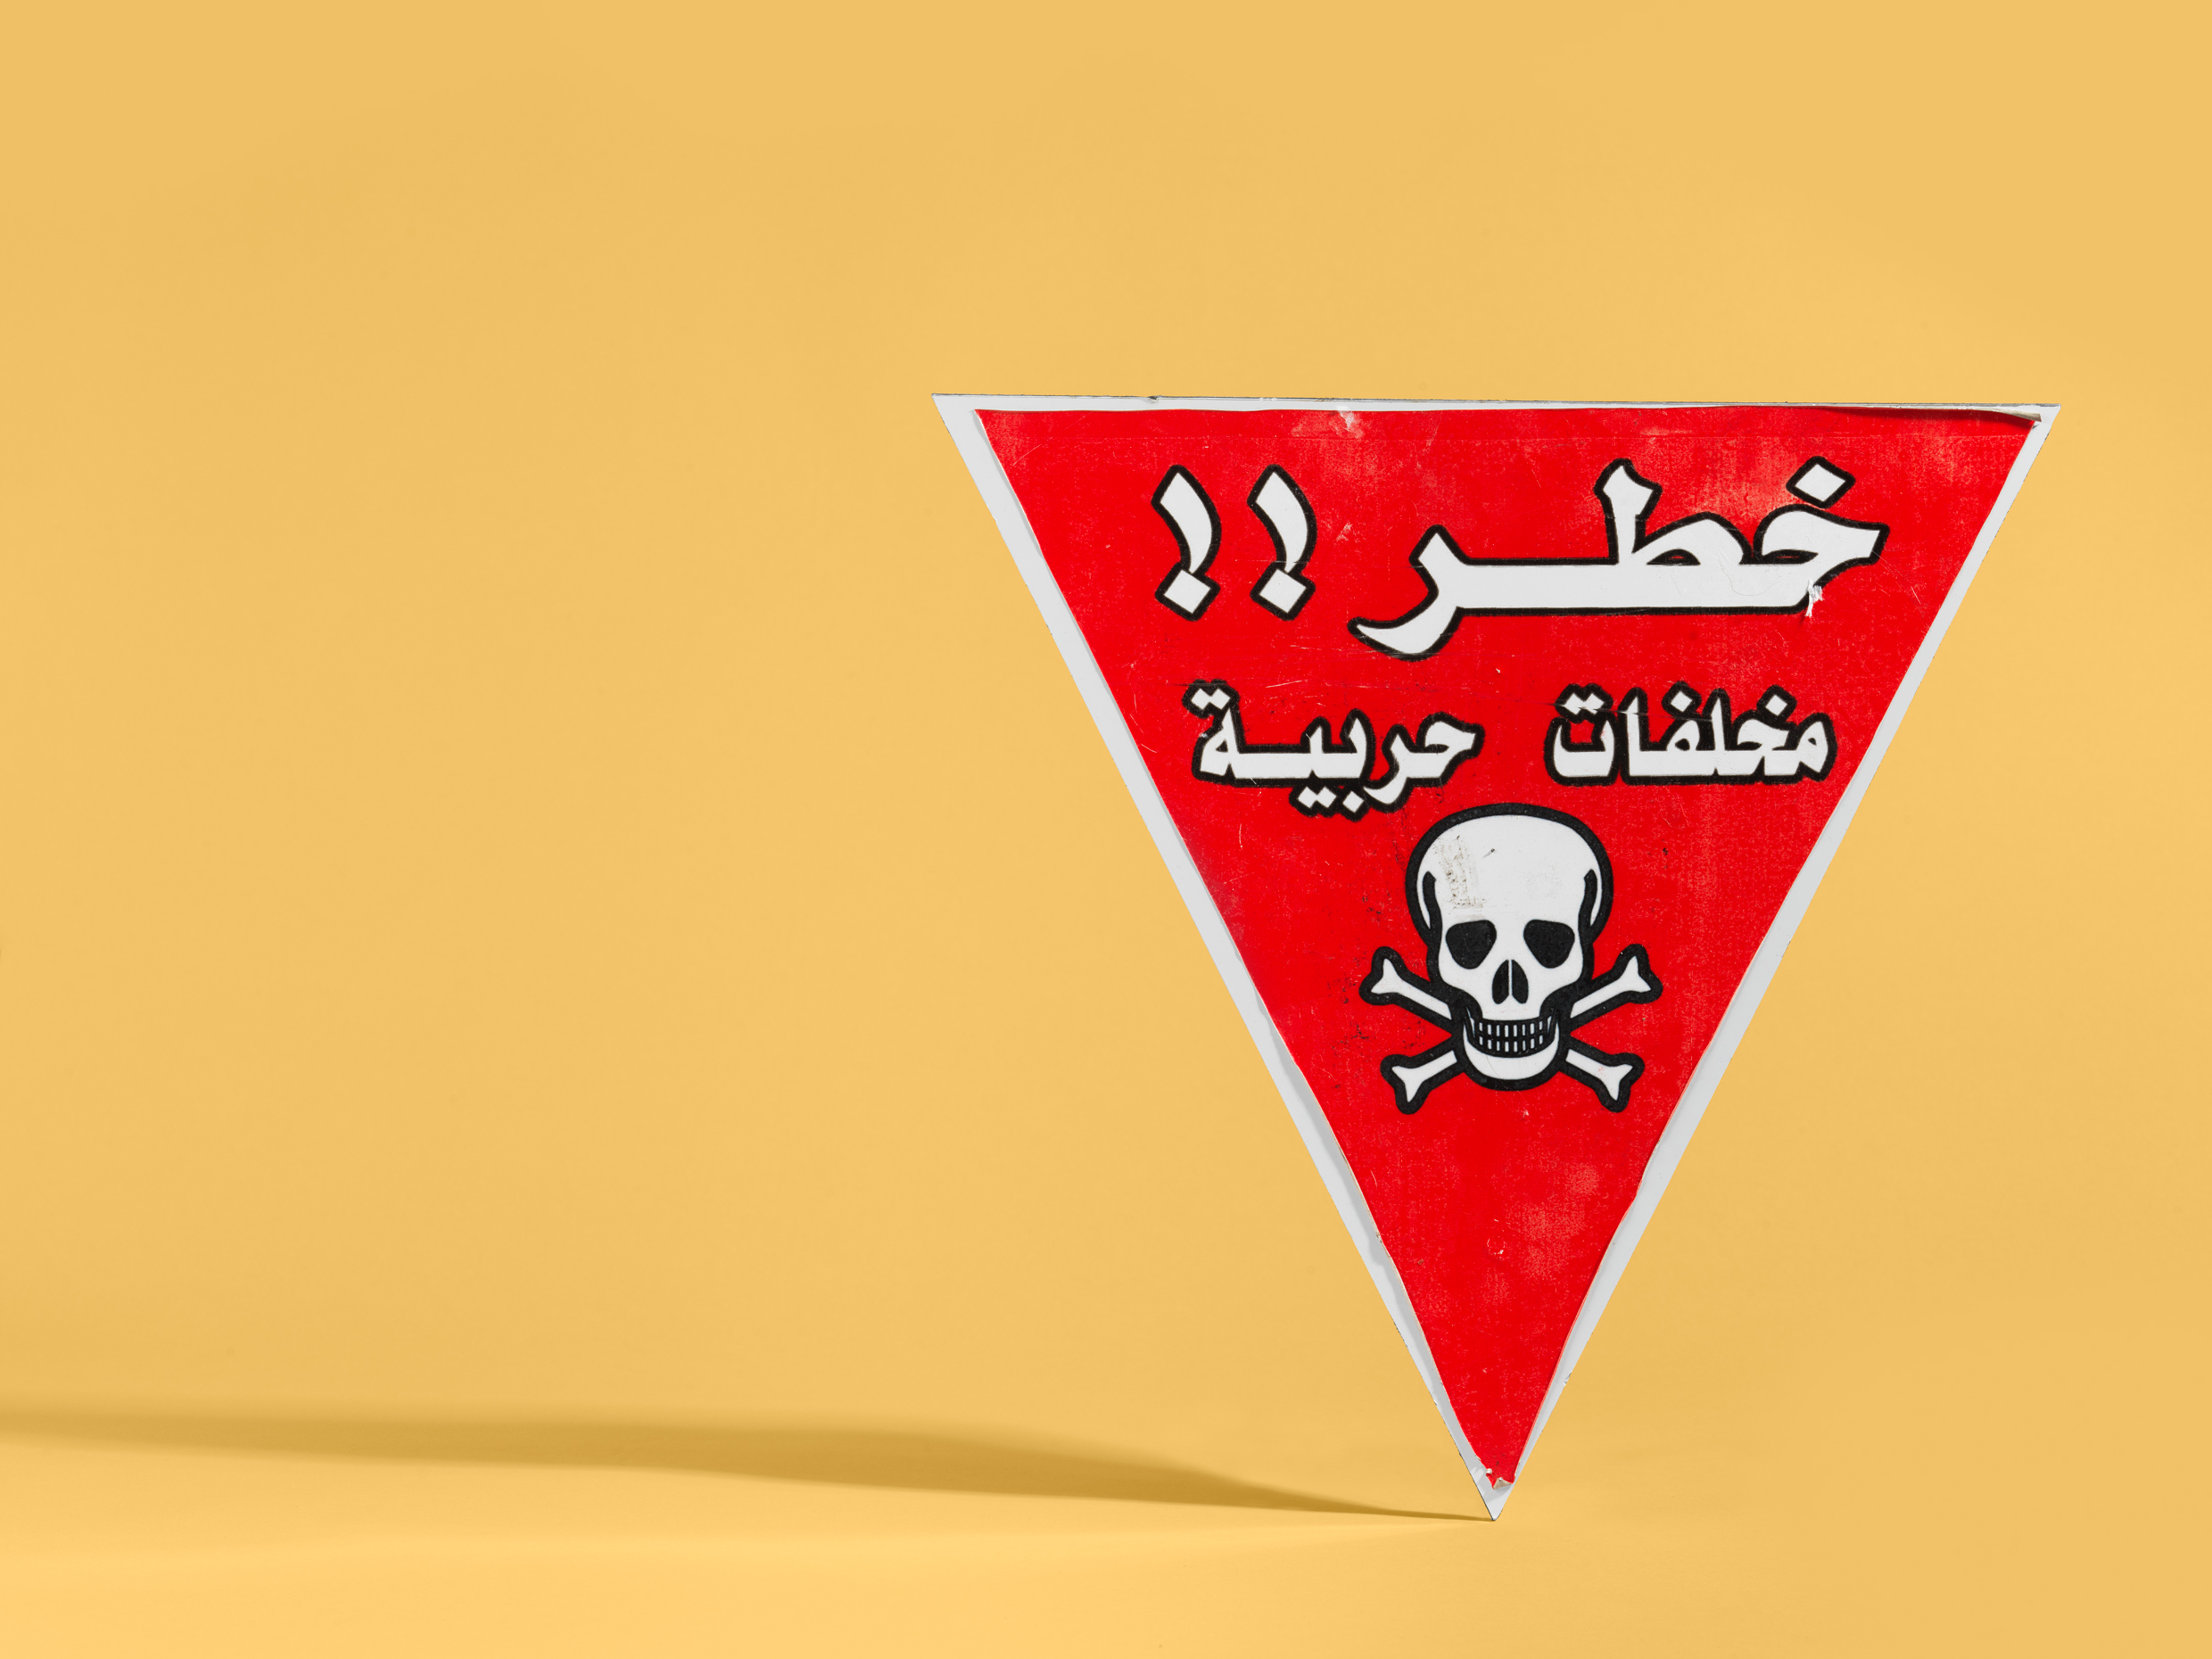 ICRC 'Explosive Remnants of War' warning sign from Iraq, 2019. In Iraq, ICRC employs local specialist staff to clear mines, bombs and other devices so that rebuilding work can begin and displaced people can return home.